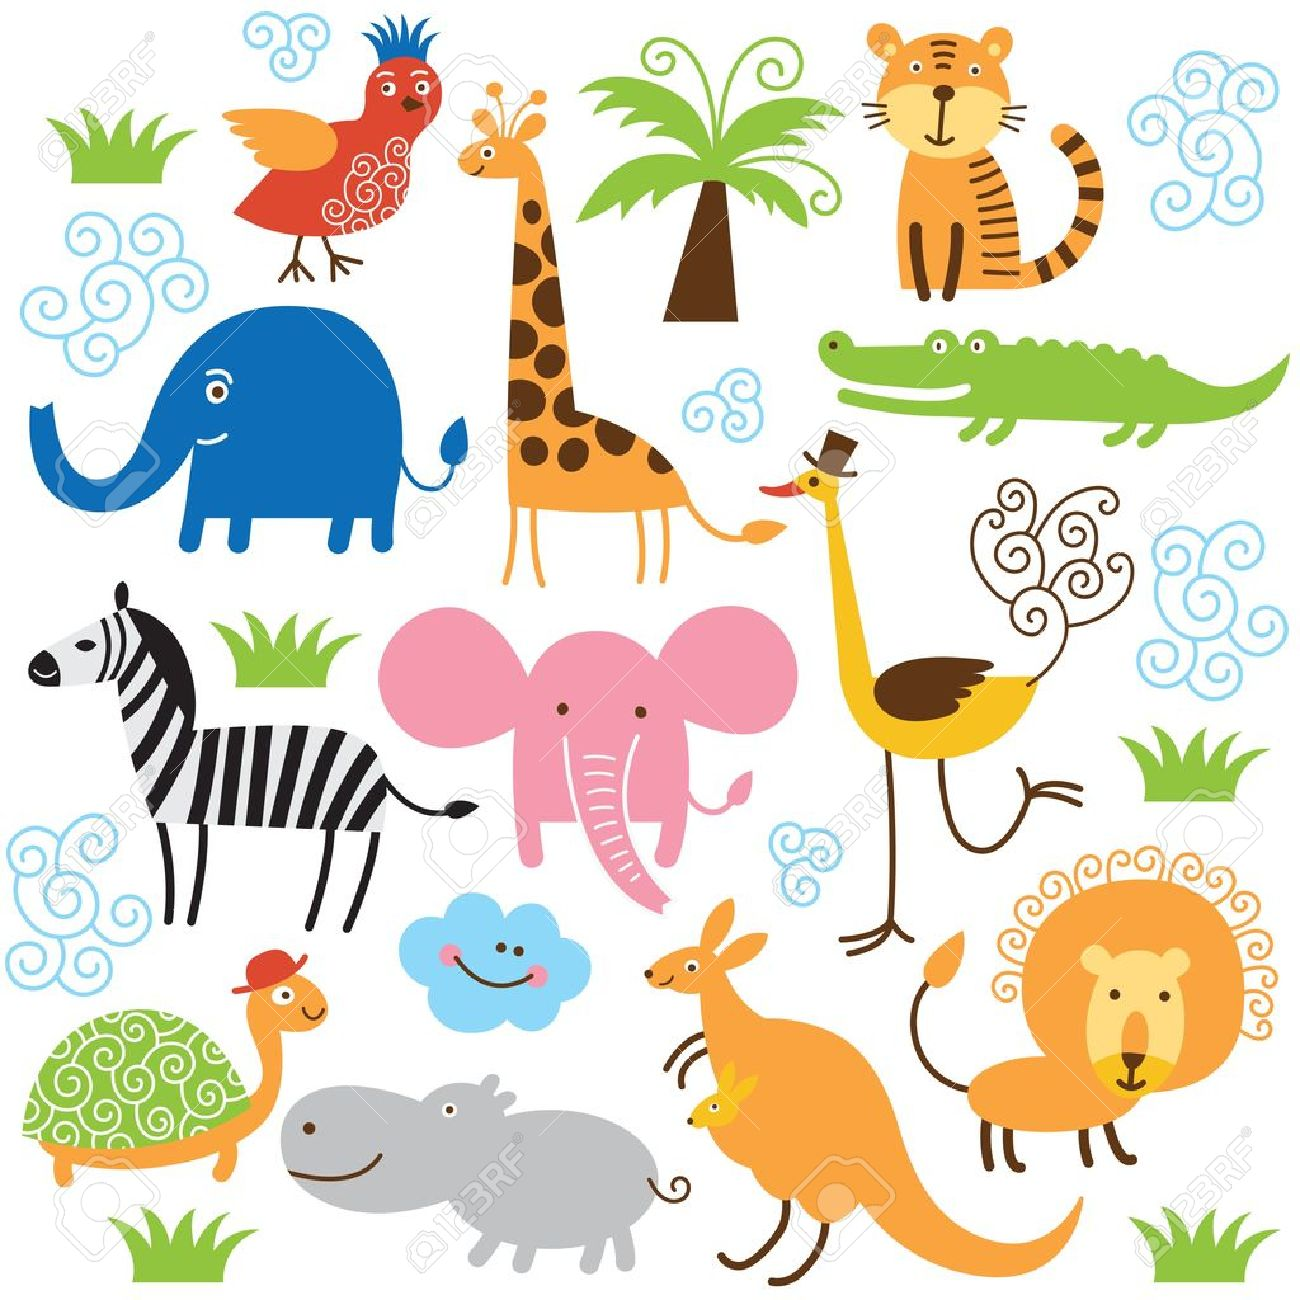 set of vector animals royalty free cliparts vectors and stock